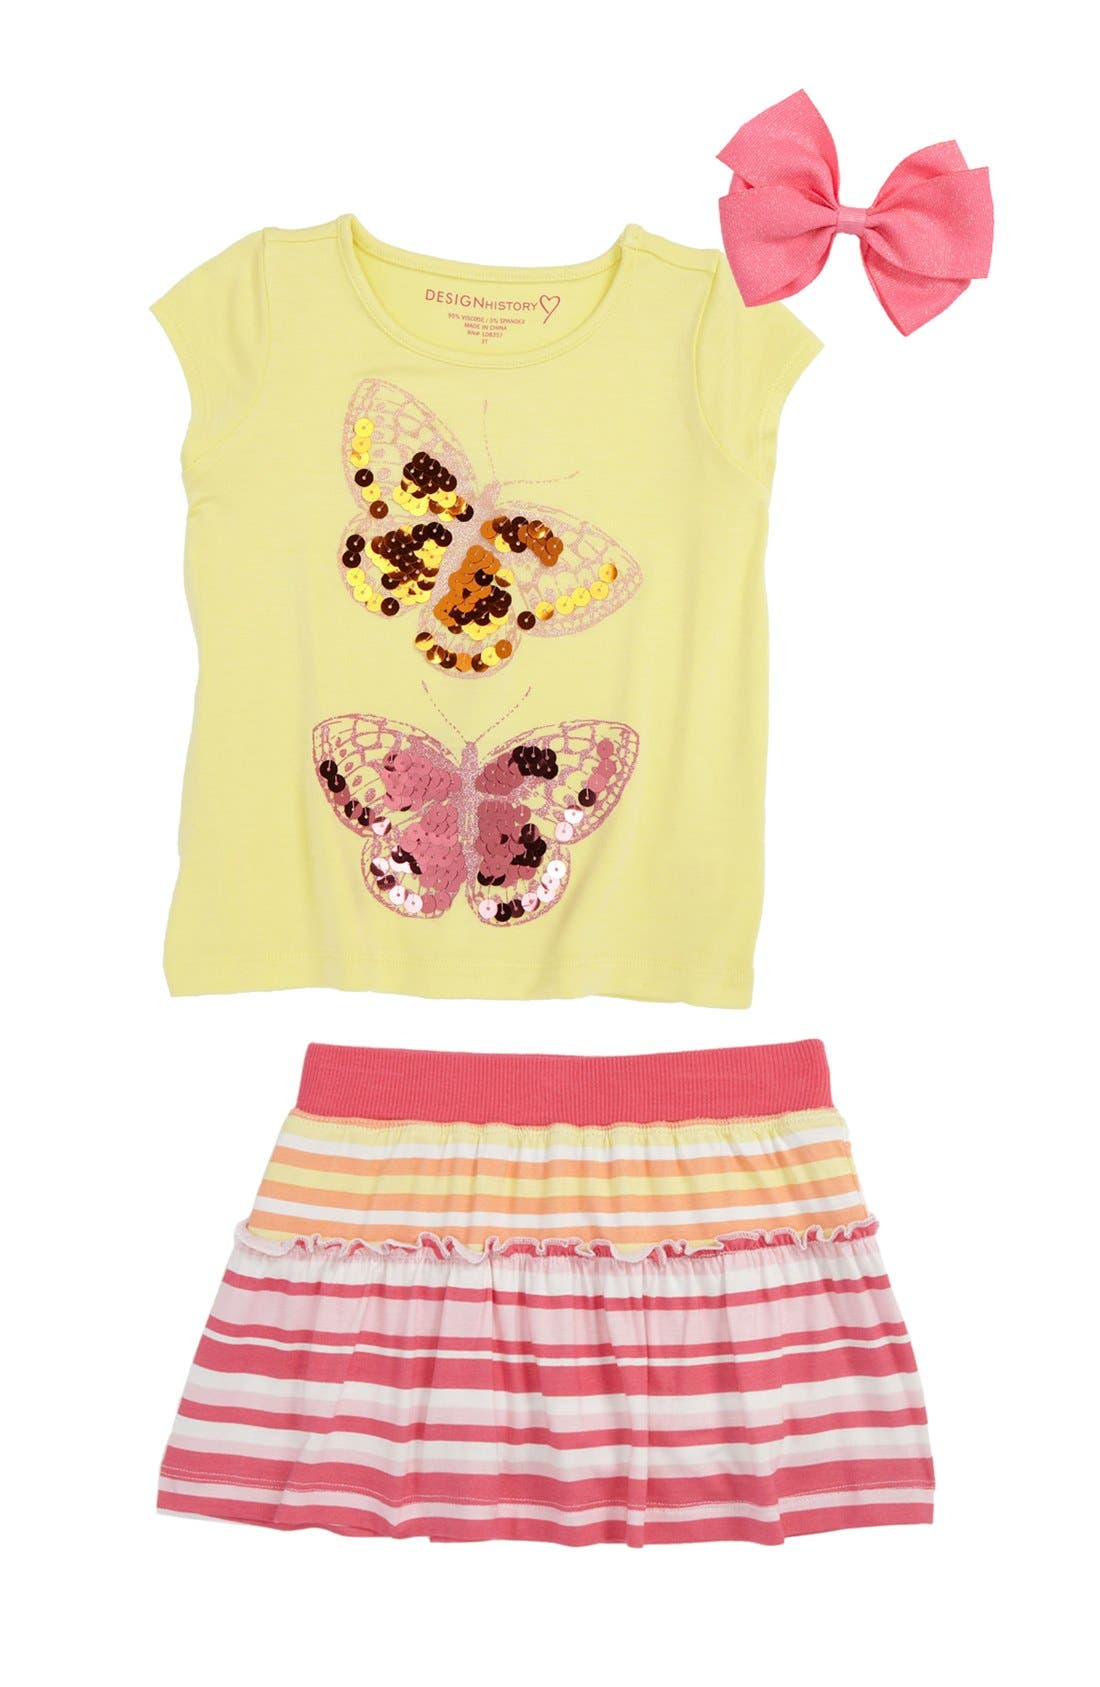 Main Image - Design History Tee & Skort & PLH Bows & Laces Hair Clip (Toddler)